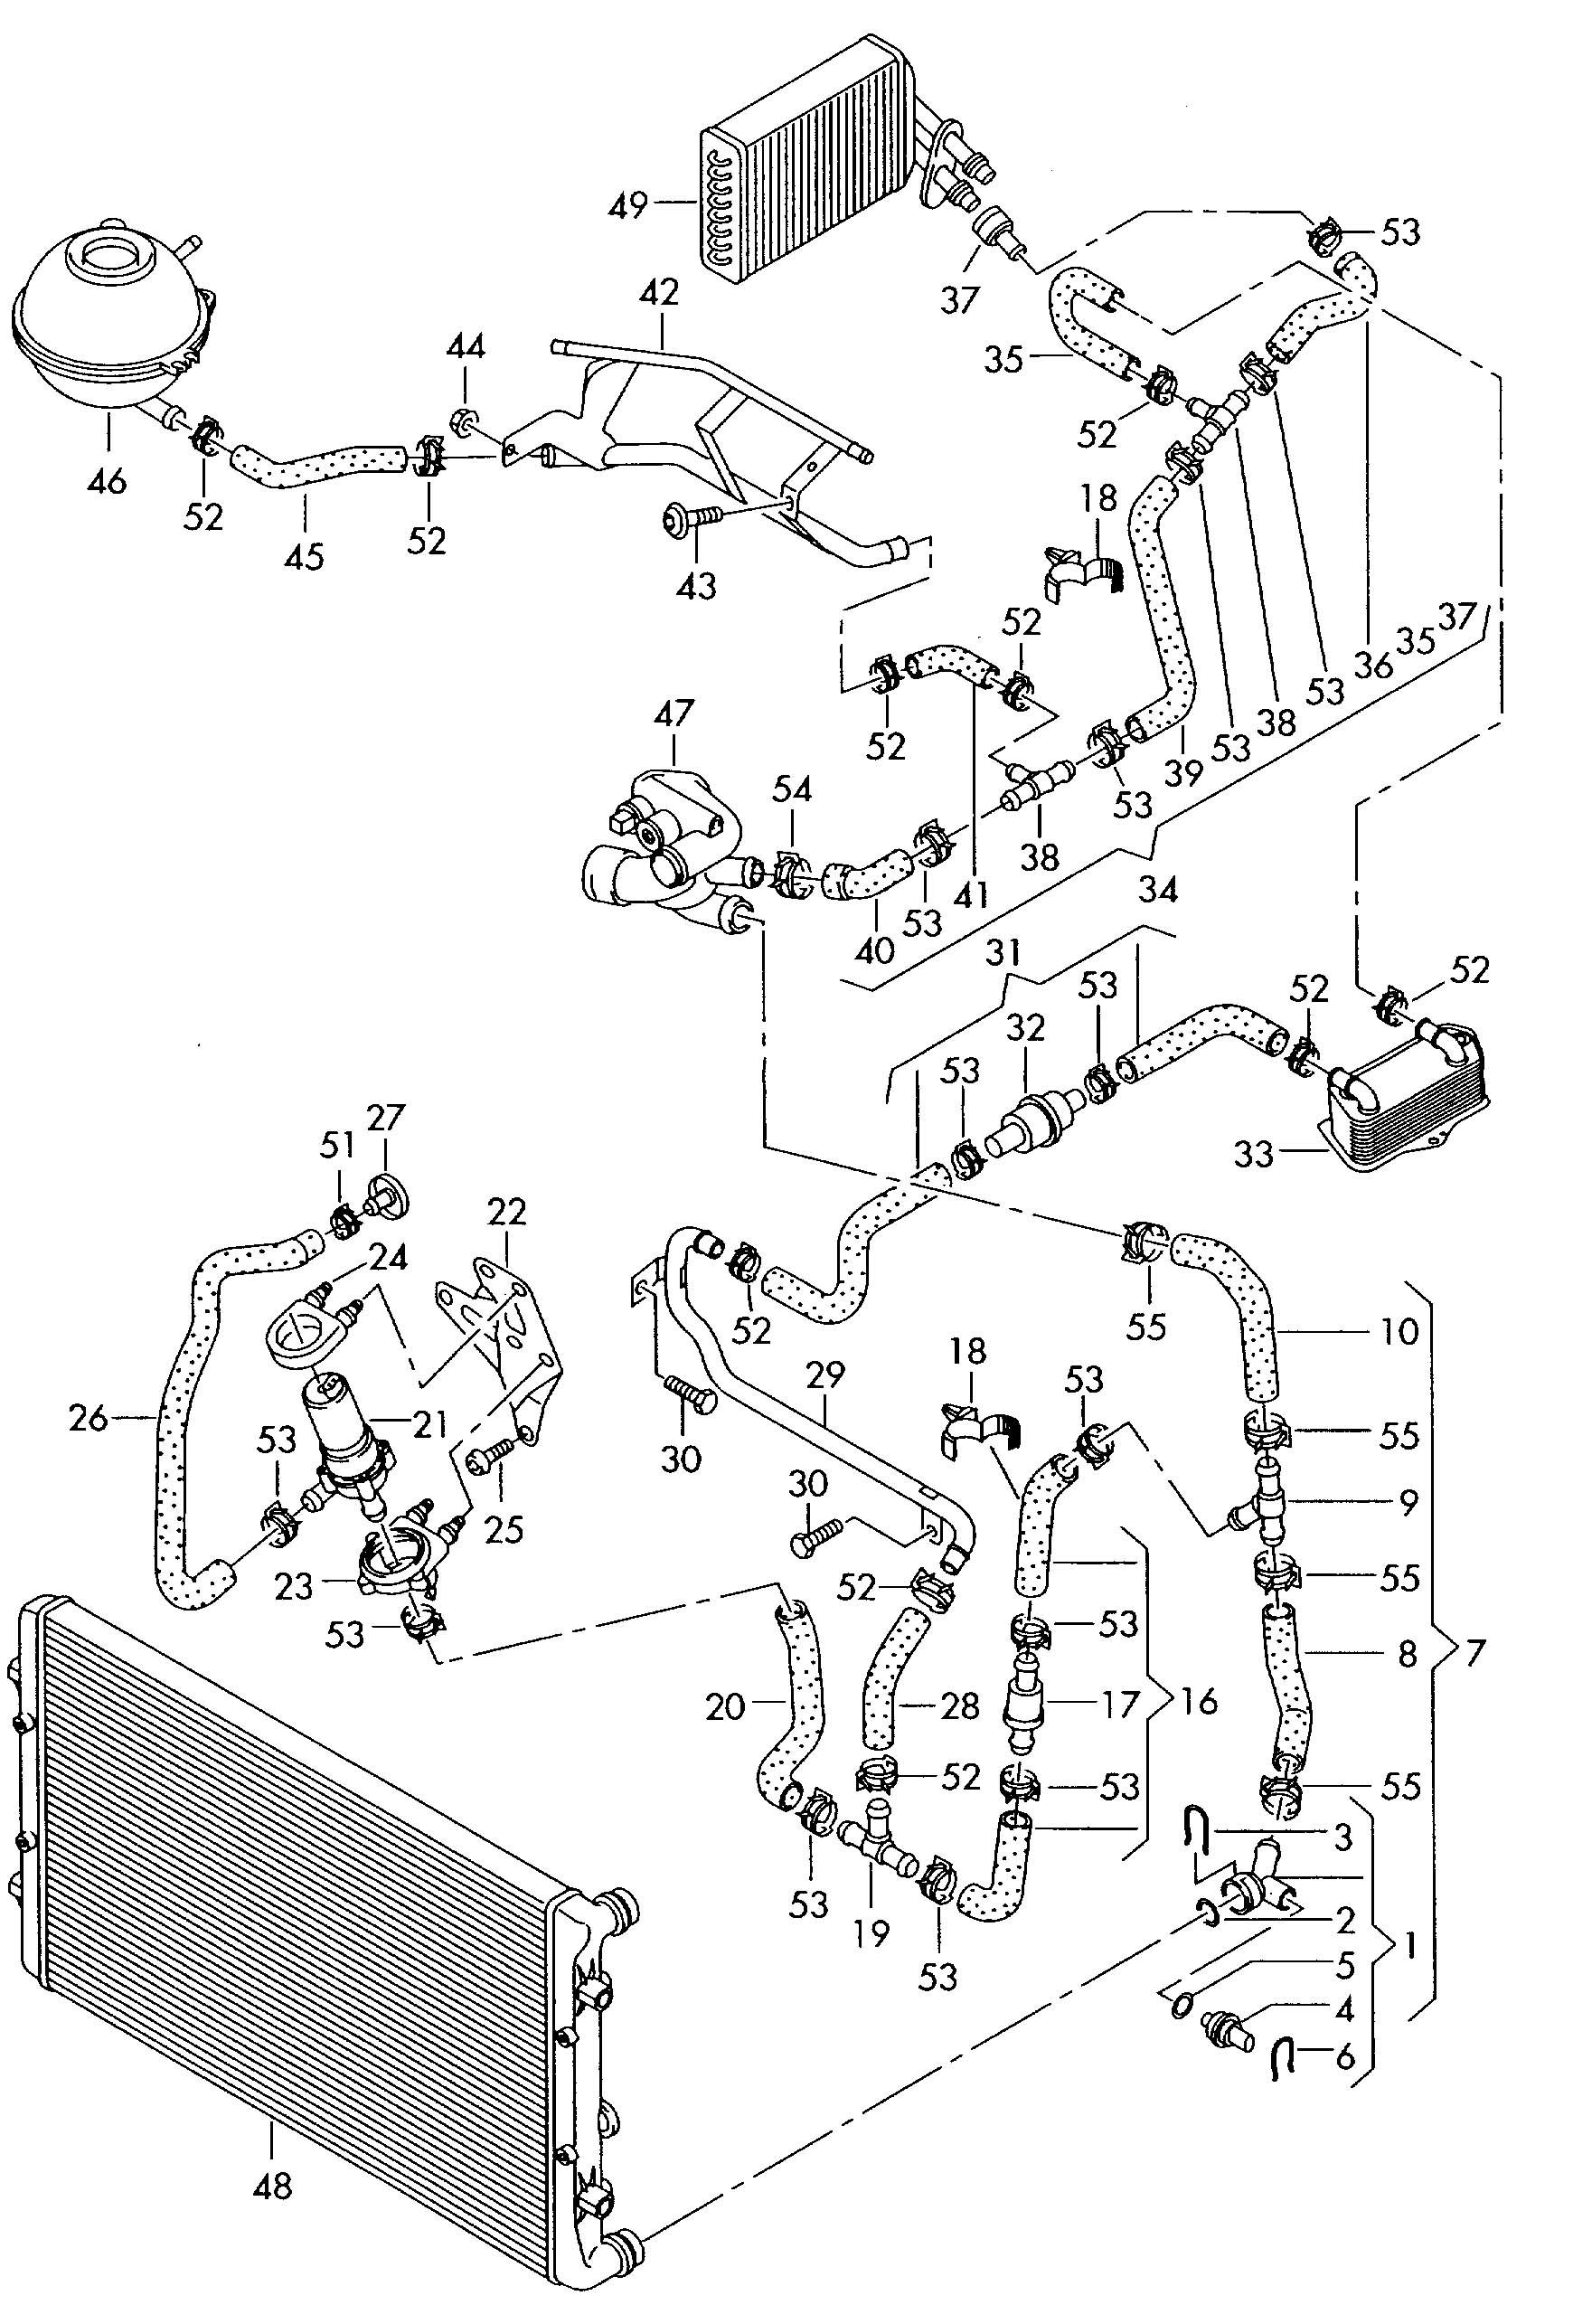 audi a3 cooling system diagram audi pinterest audi a3 and cars rh pinterest com